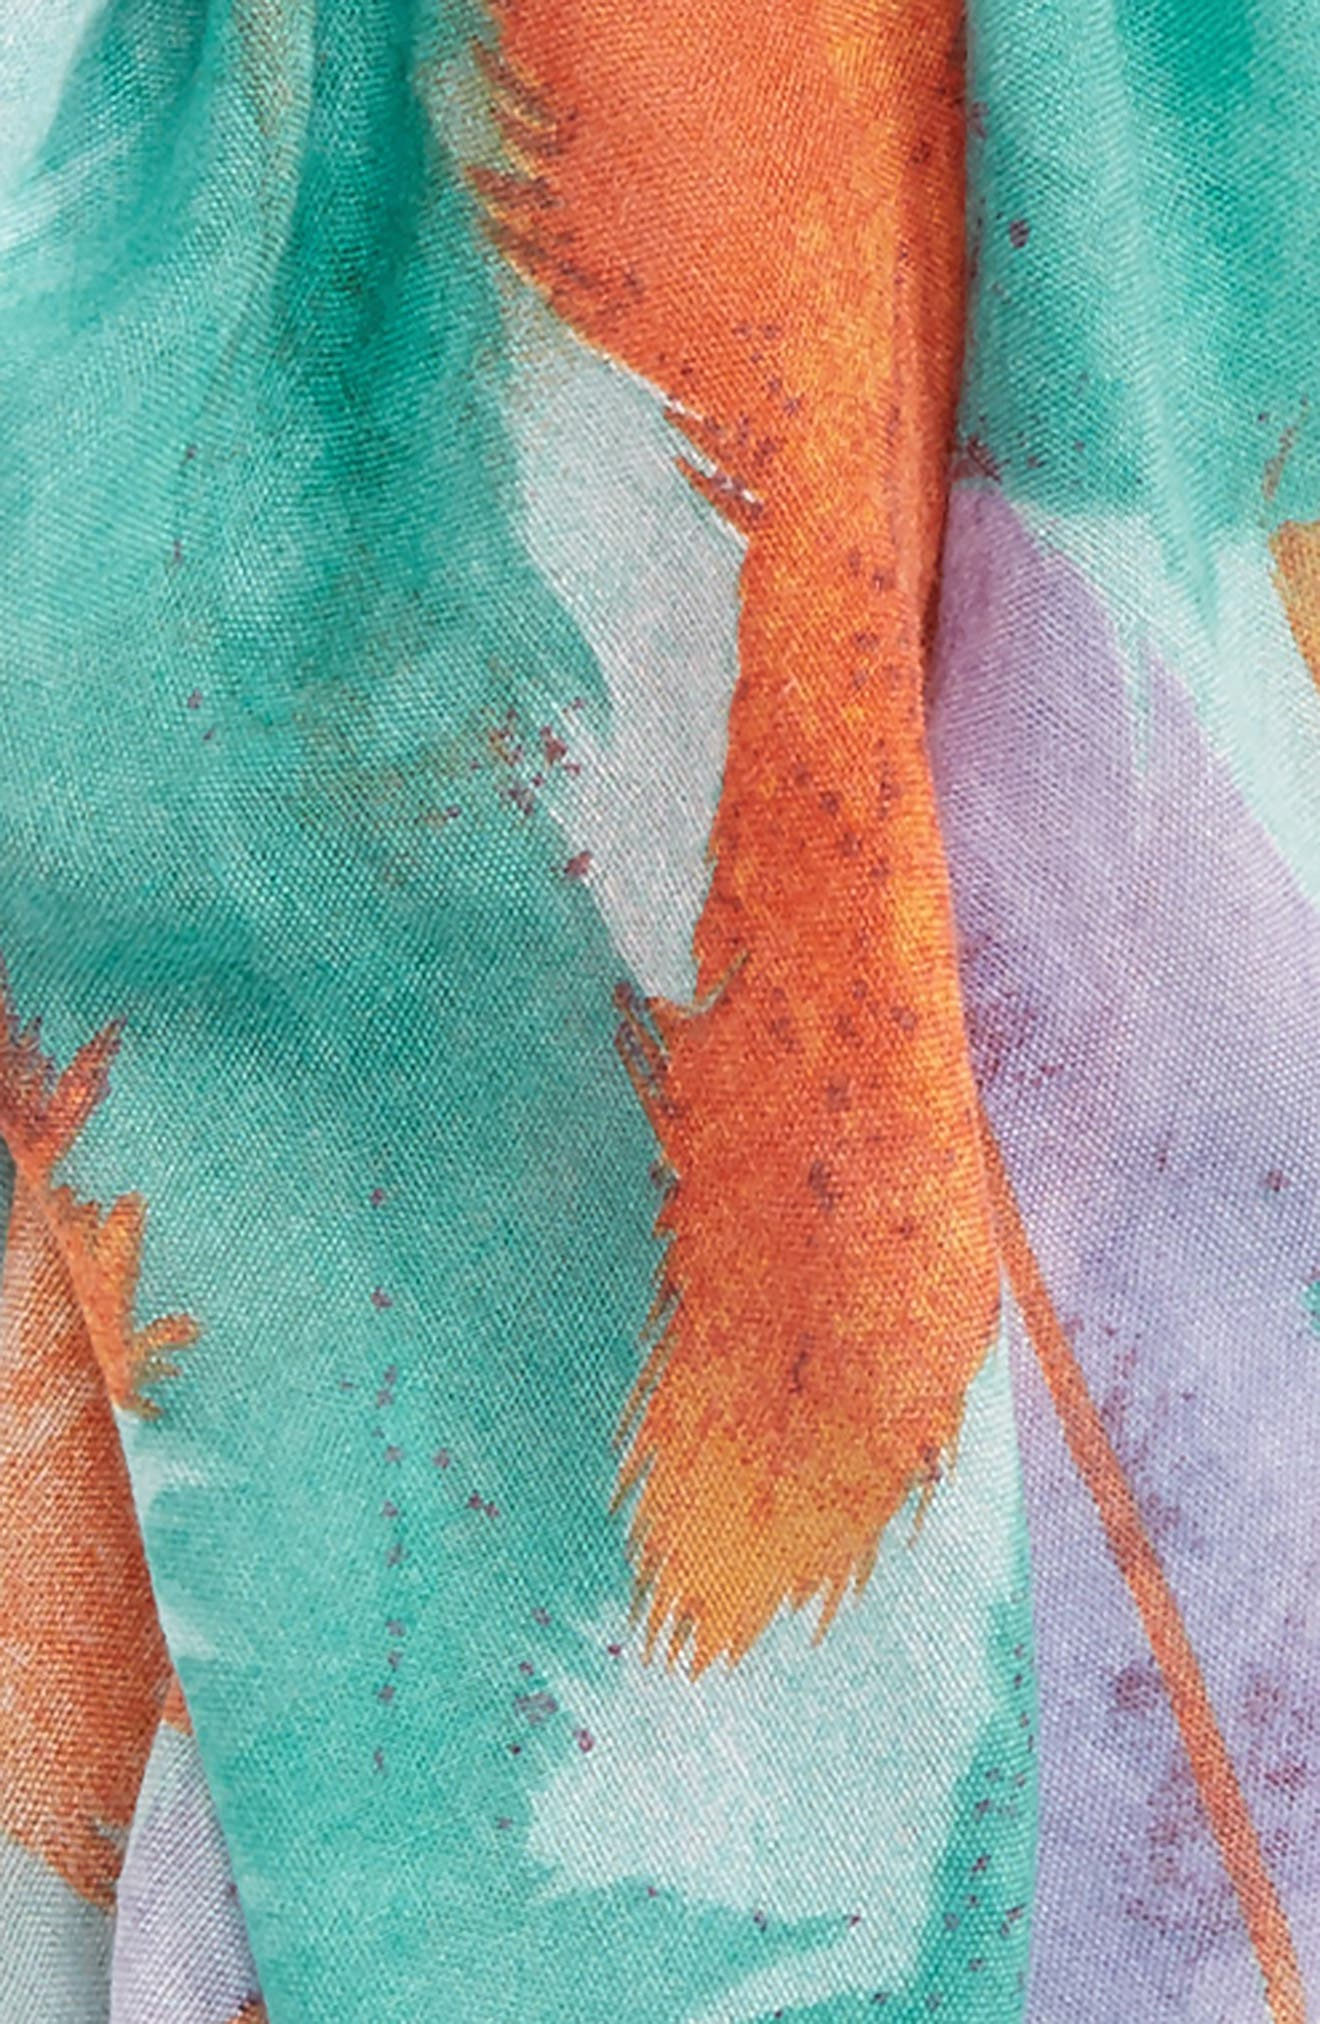 Alternate Image 3  - Accessory Collective Abstract Feather Print Scarf